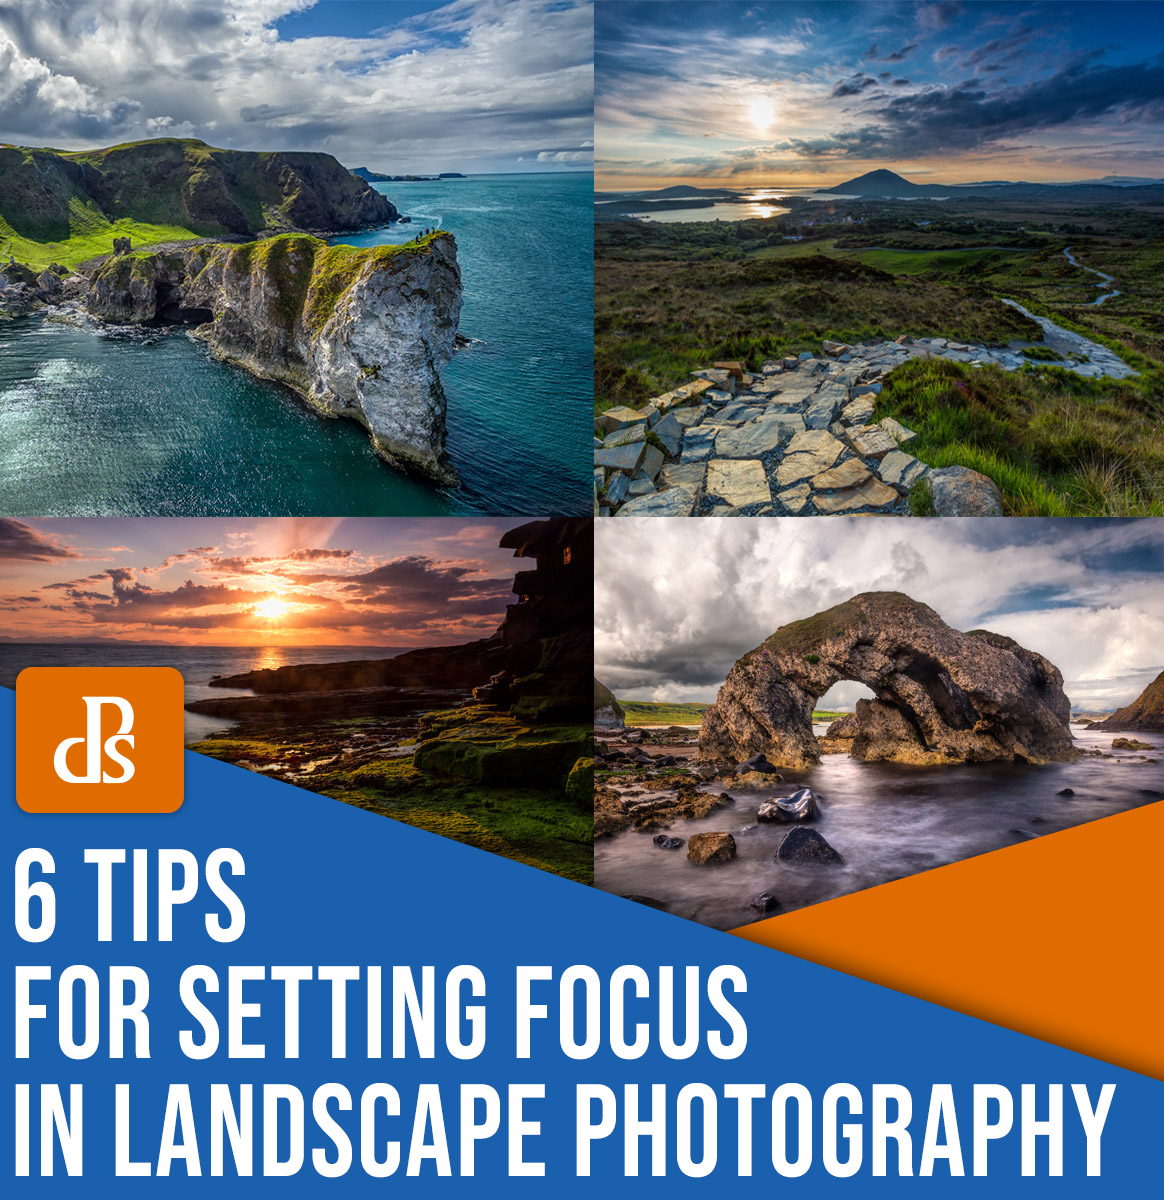 tips for setting focus in landscape photography